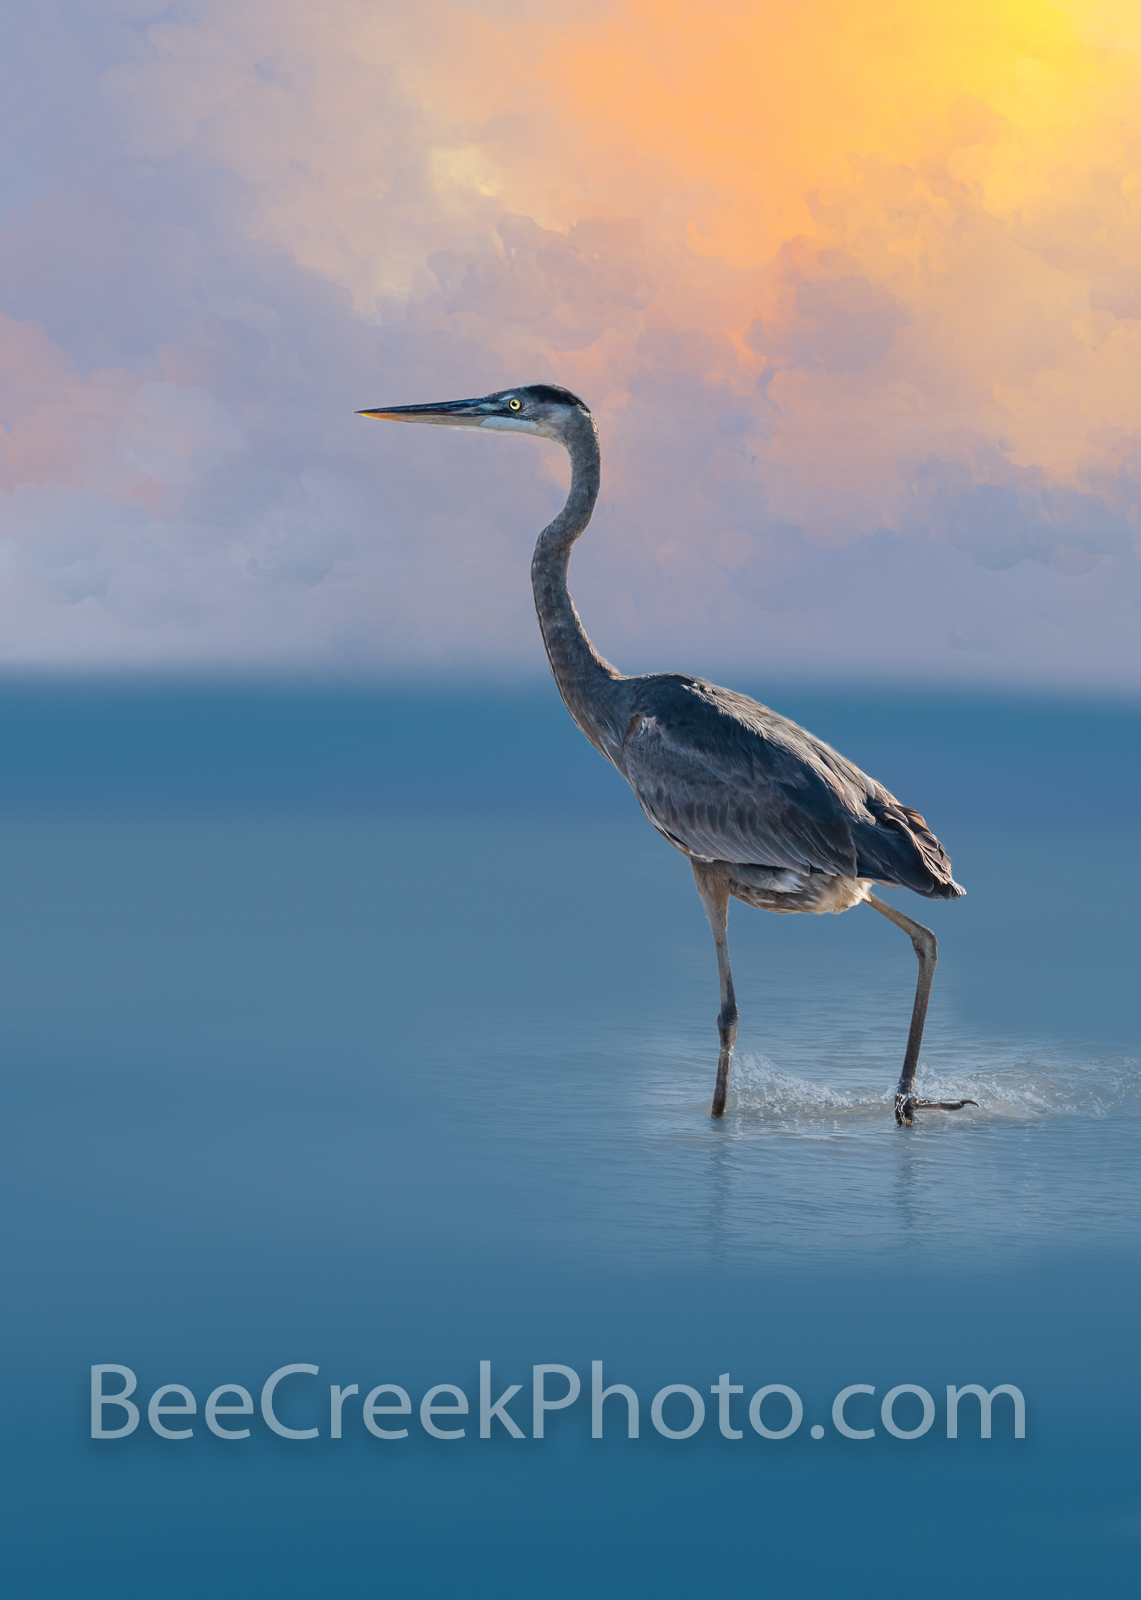 Great Blue Heron - This is a photo-painting of the great blue heron wading out as he is searching for food along the shallows...